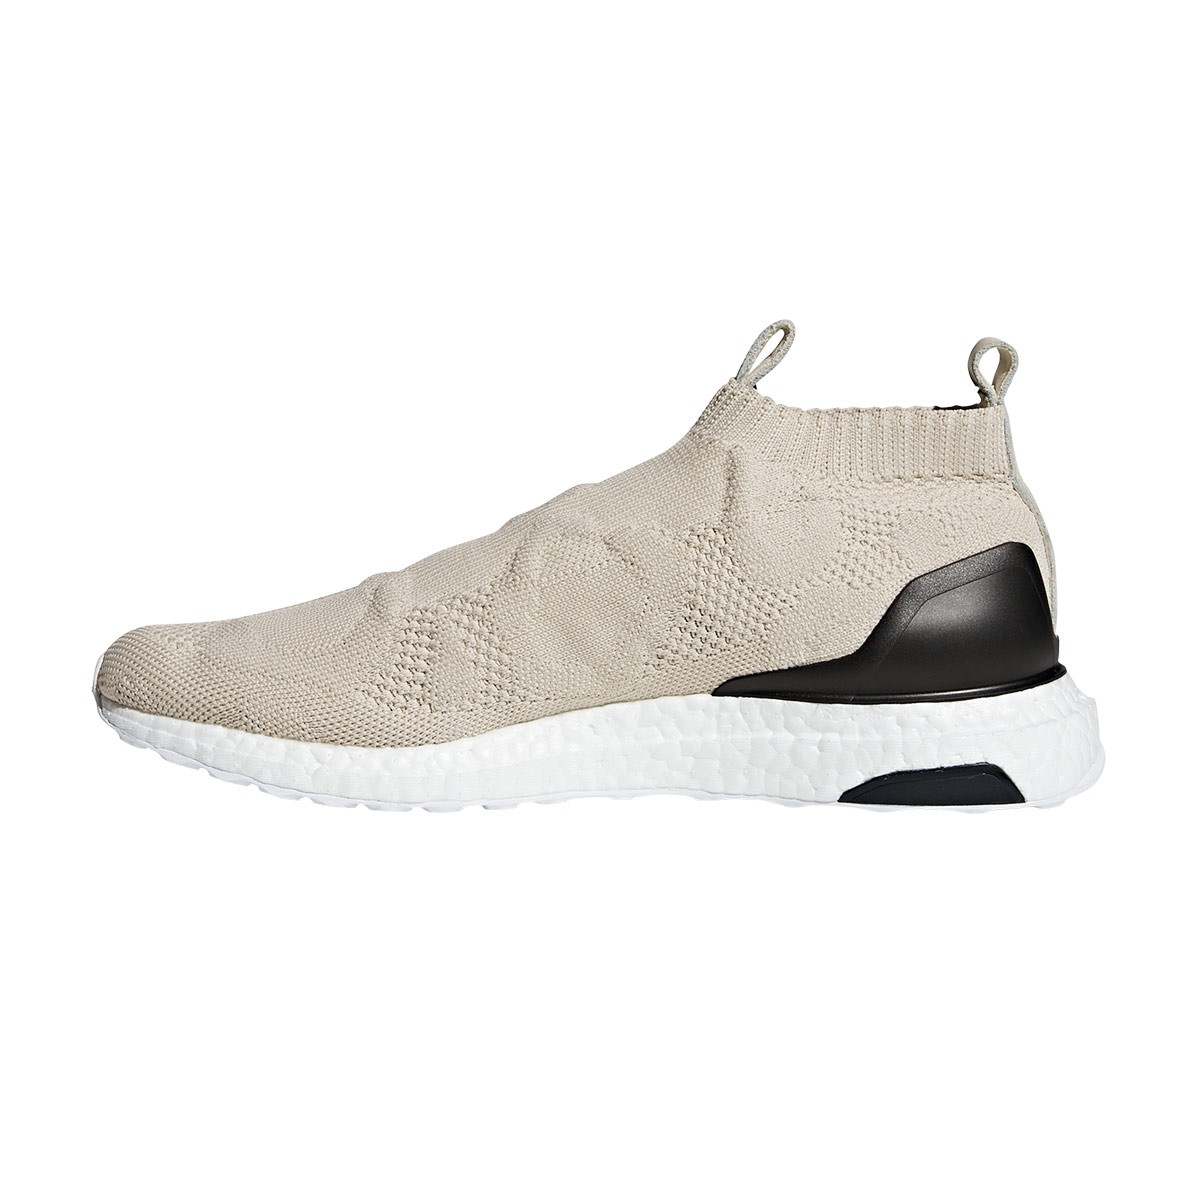 0875309c683 Trainers adidas Ace 16+ Ultraboost Brown-Black - Football store Fútbol  Emotion